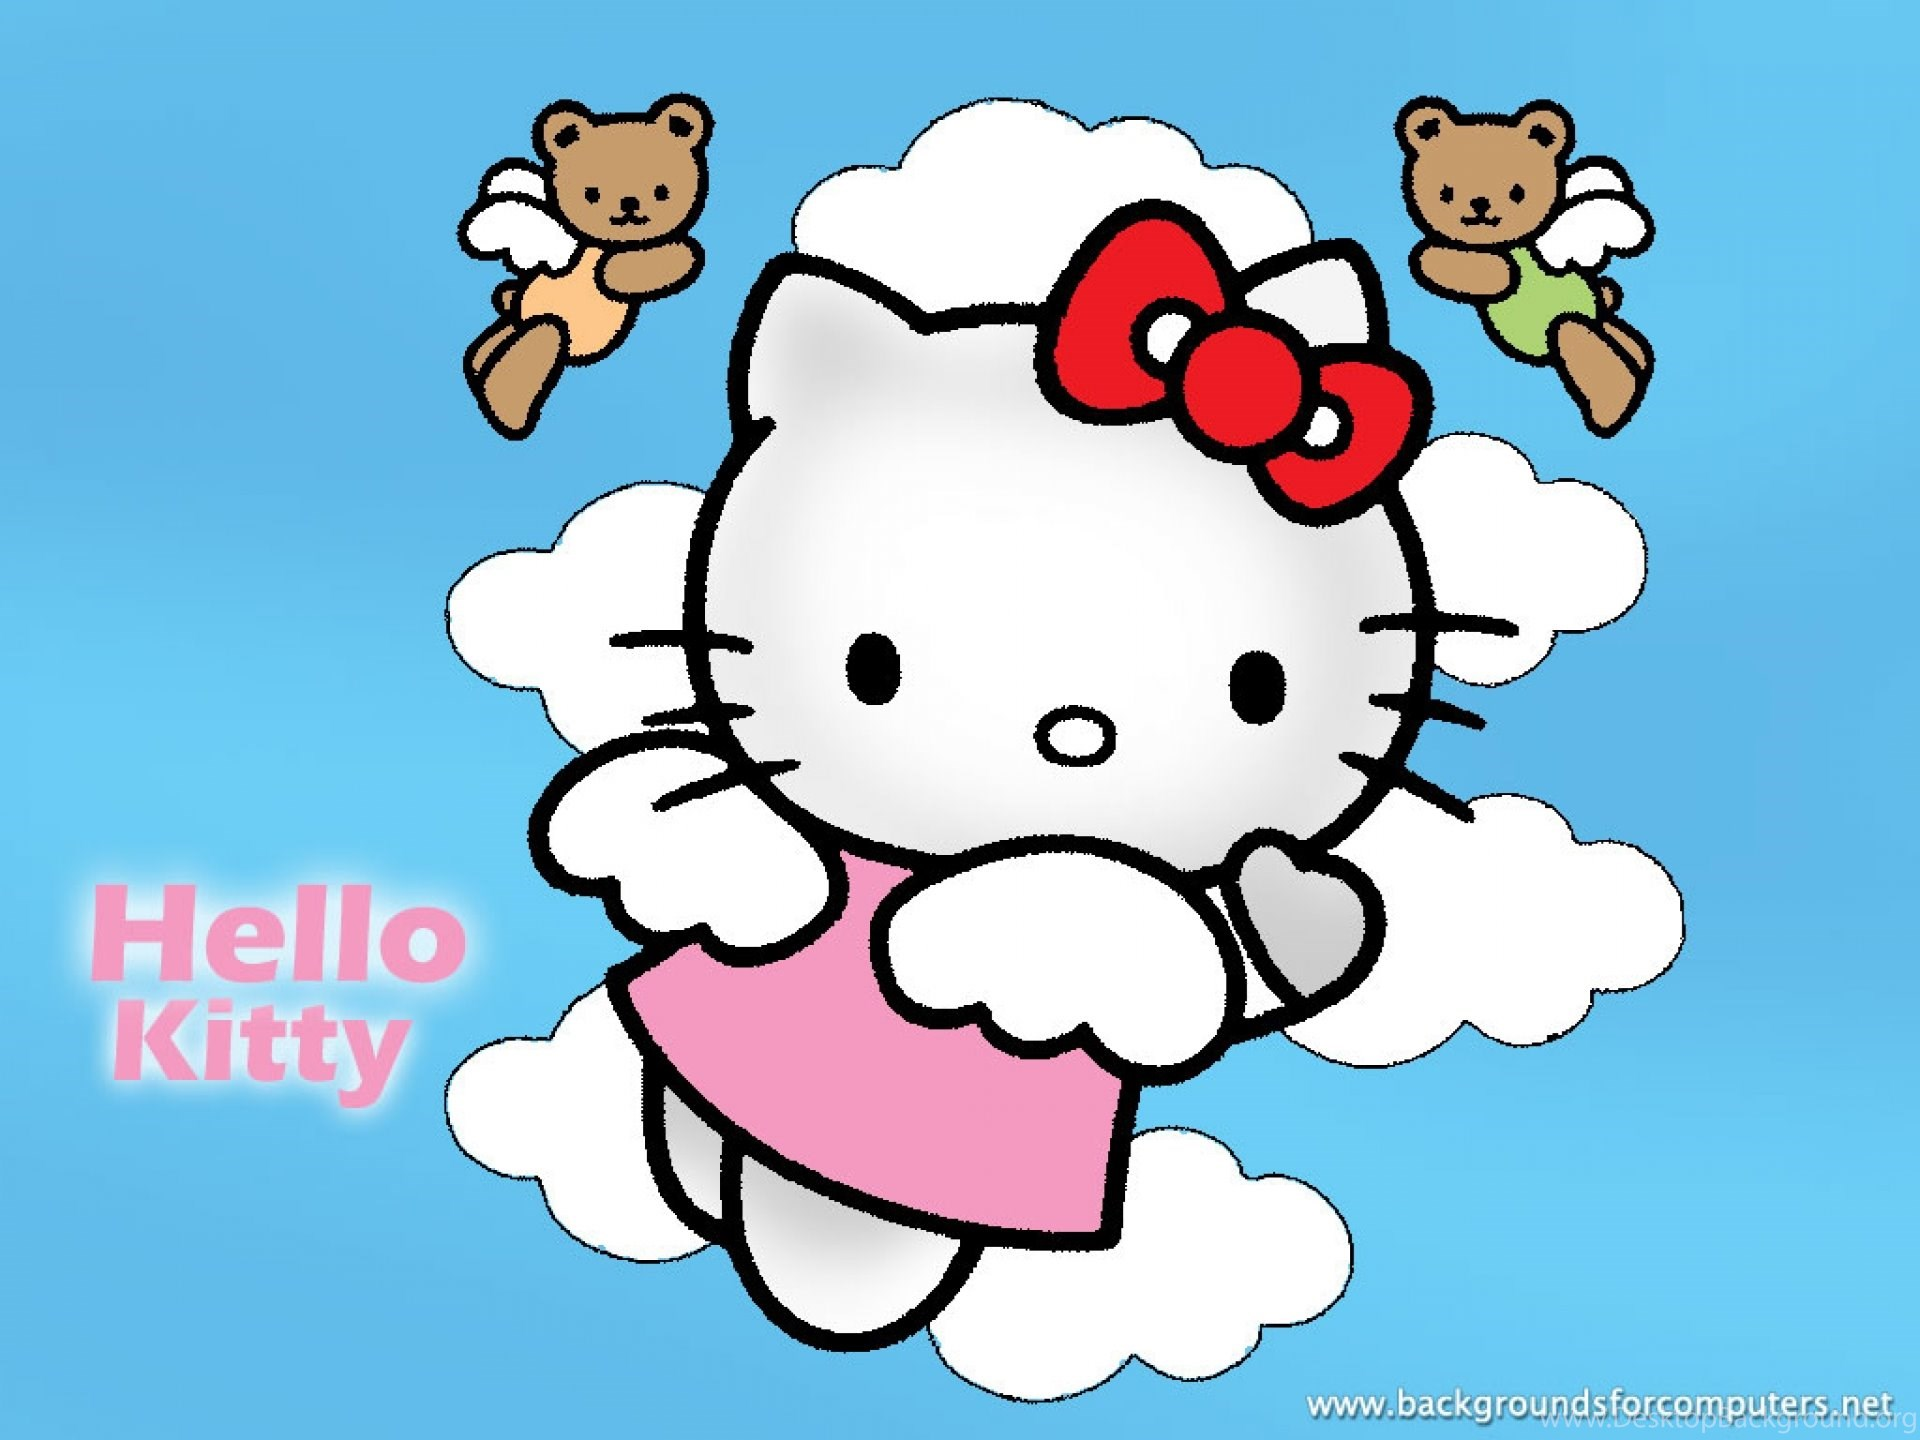 Fonds D écran Hello Kitty Tous Les Wallpapers Hello Kitty